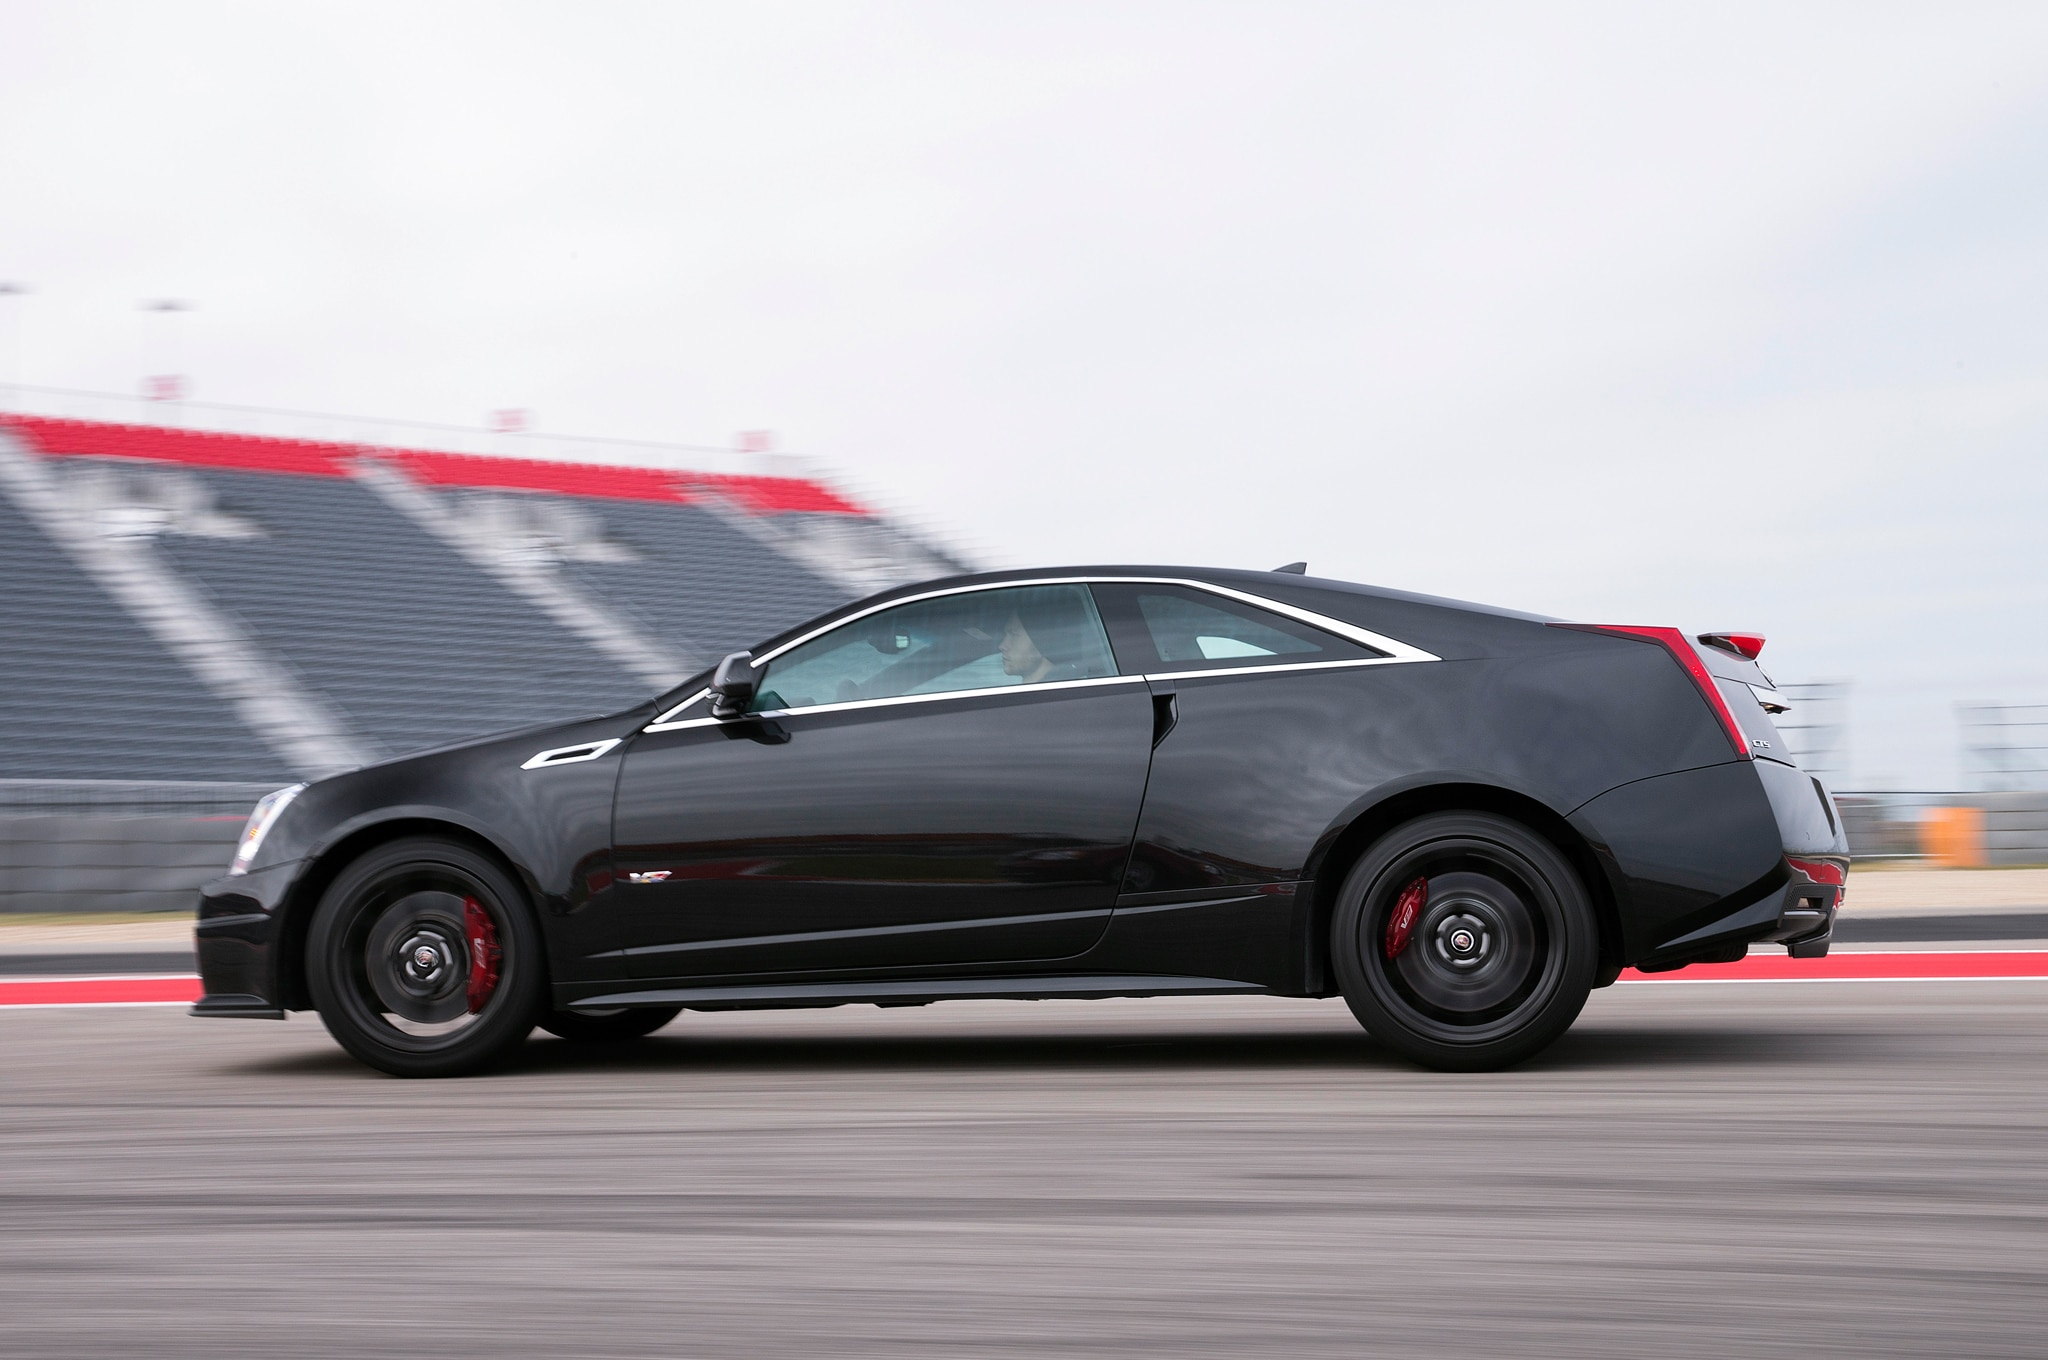 ratings car door review cadillac cts prices view performance exterior angular front connection ats specs the premium rwd and overview photos coupe h